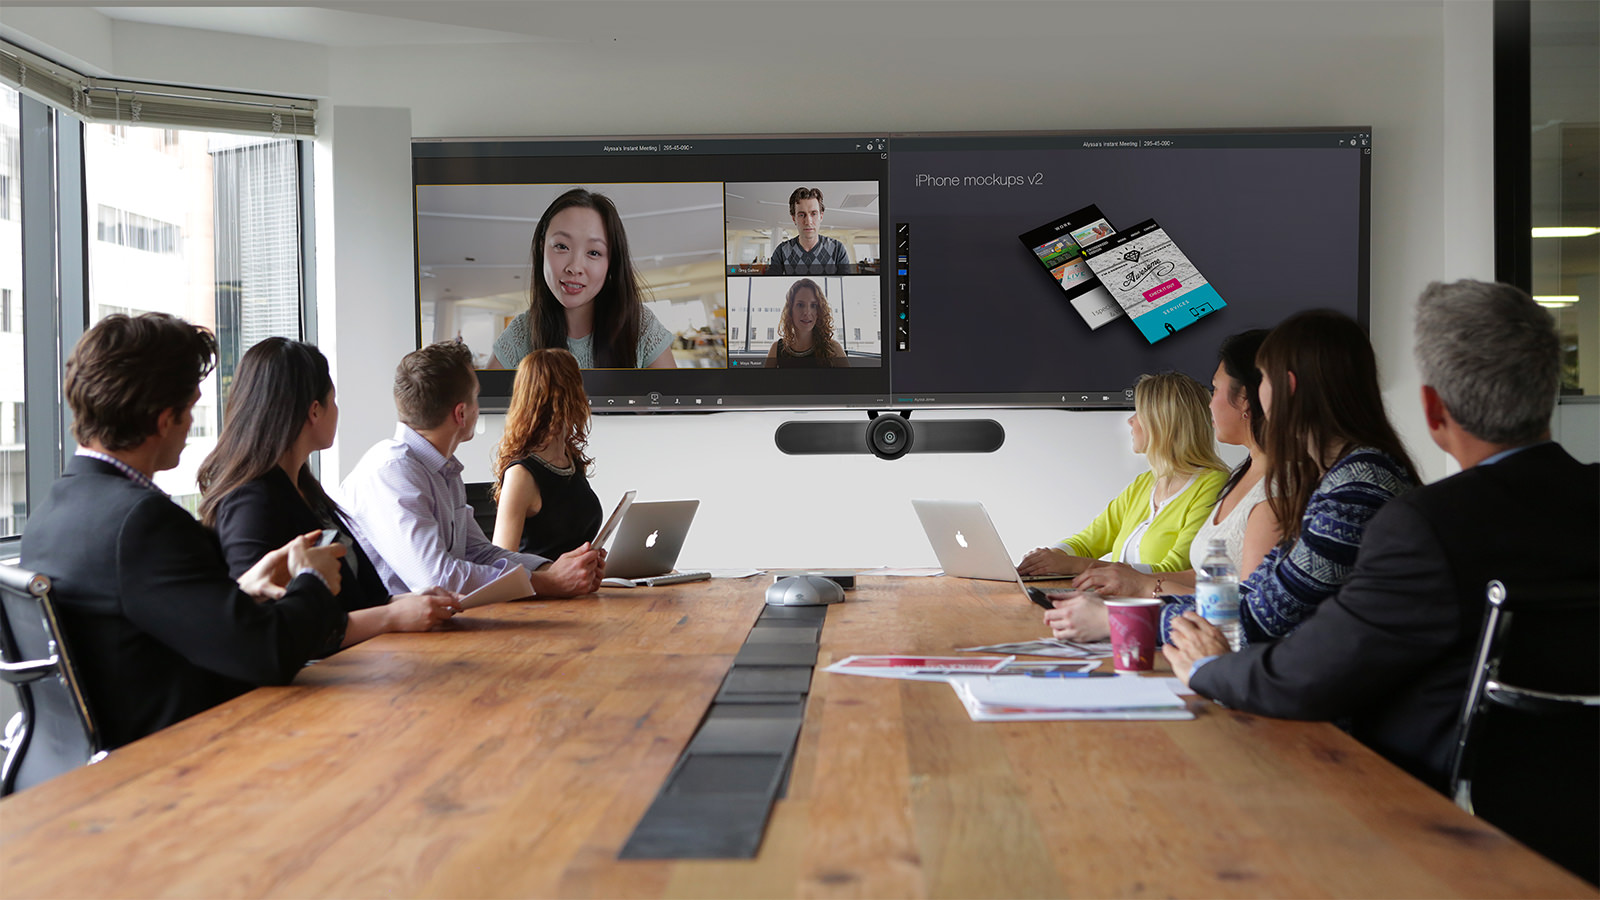 Team meeting in a conference room, with other employees on video conference